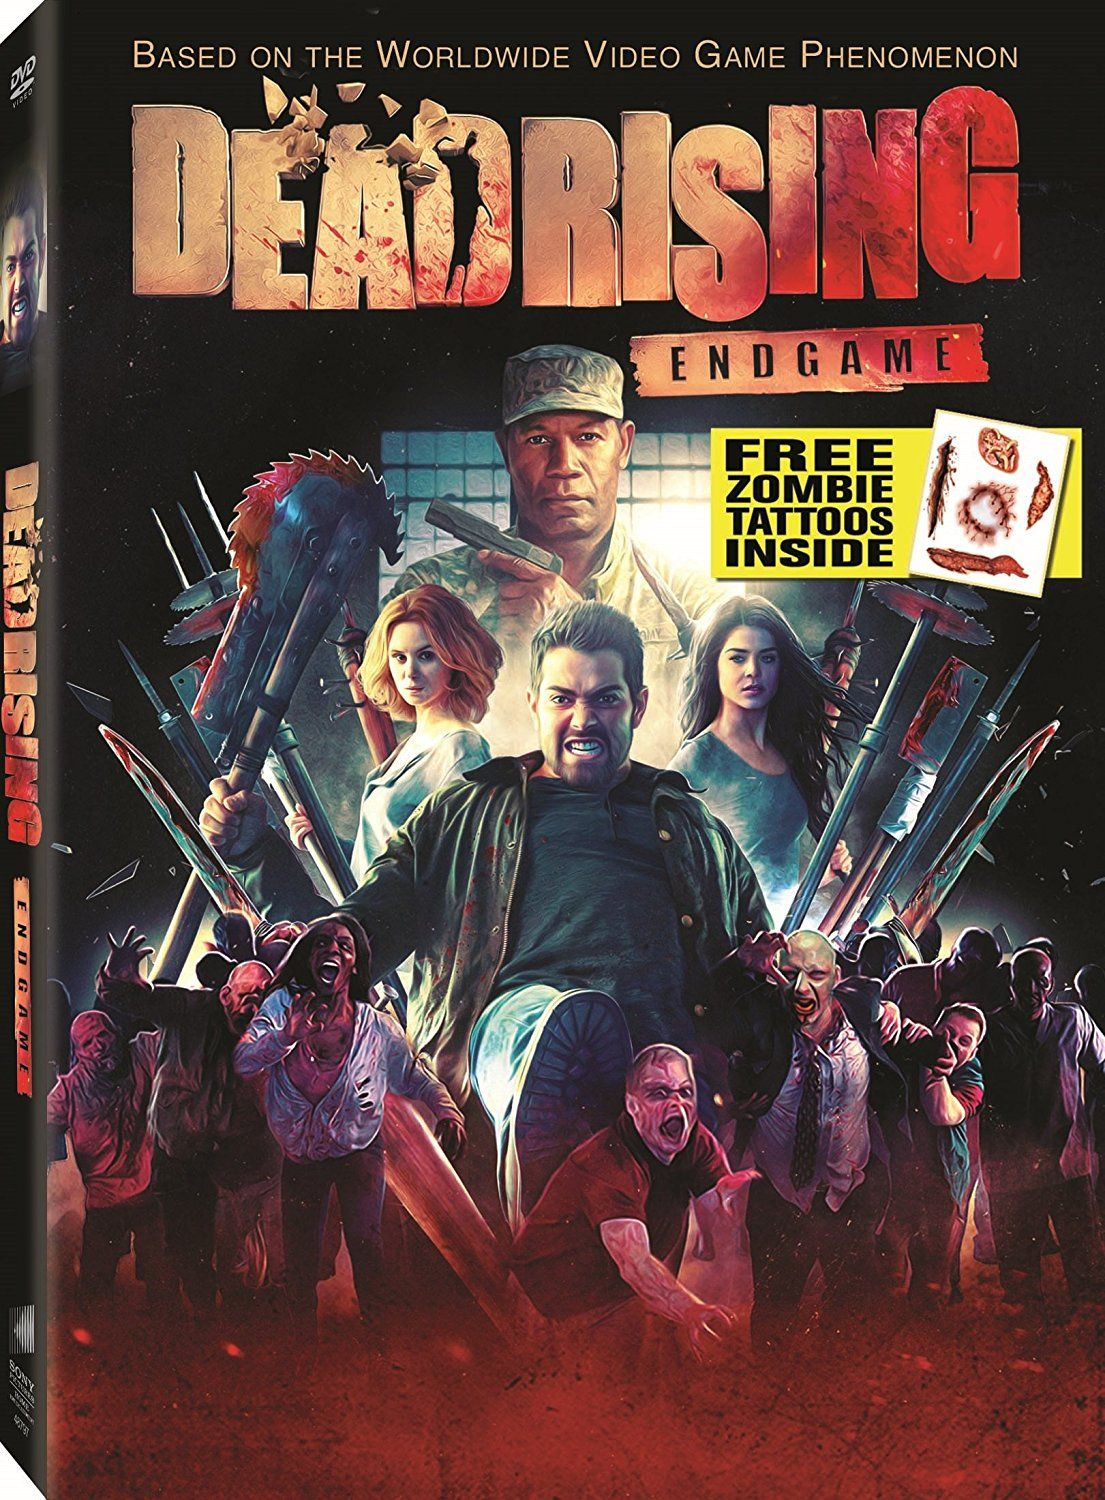 New On Dvd And Blu Ray December 6 2016 Dead Rising Blu Ray Dvd